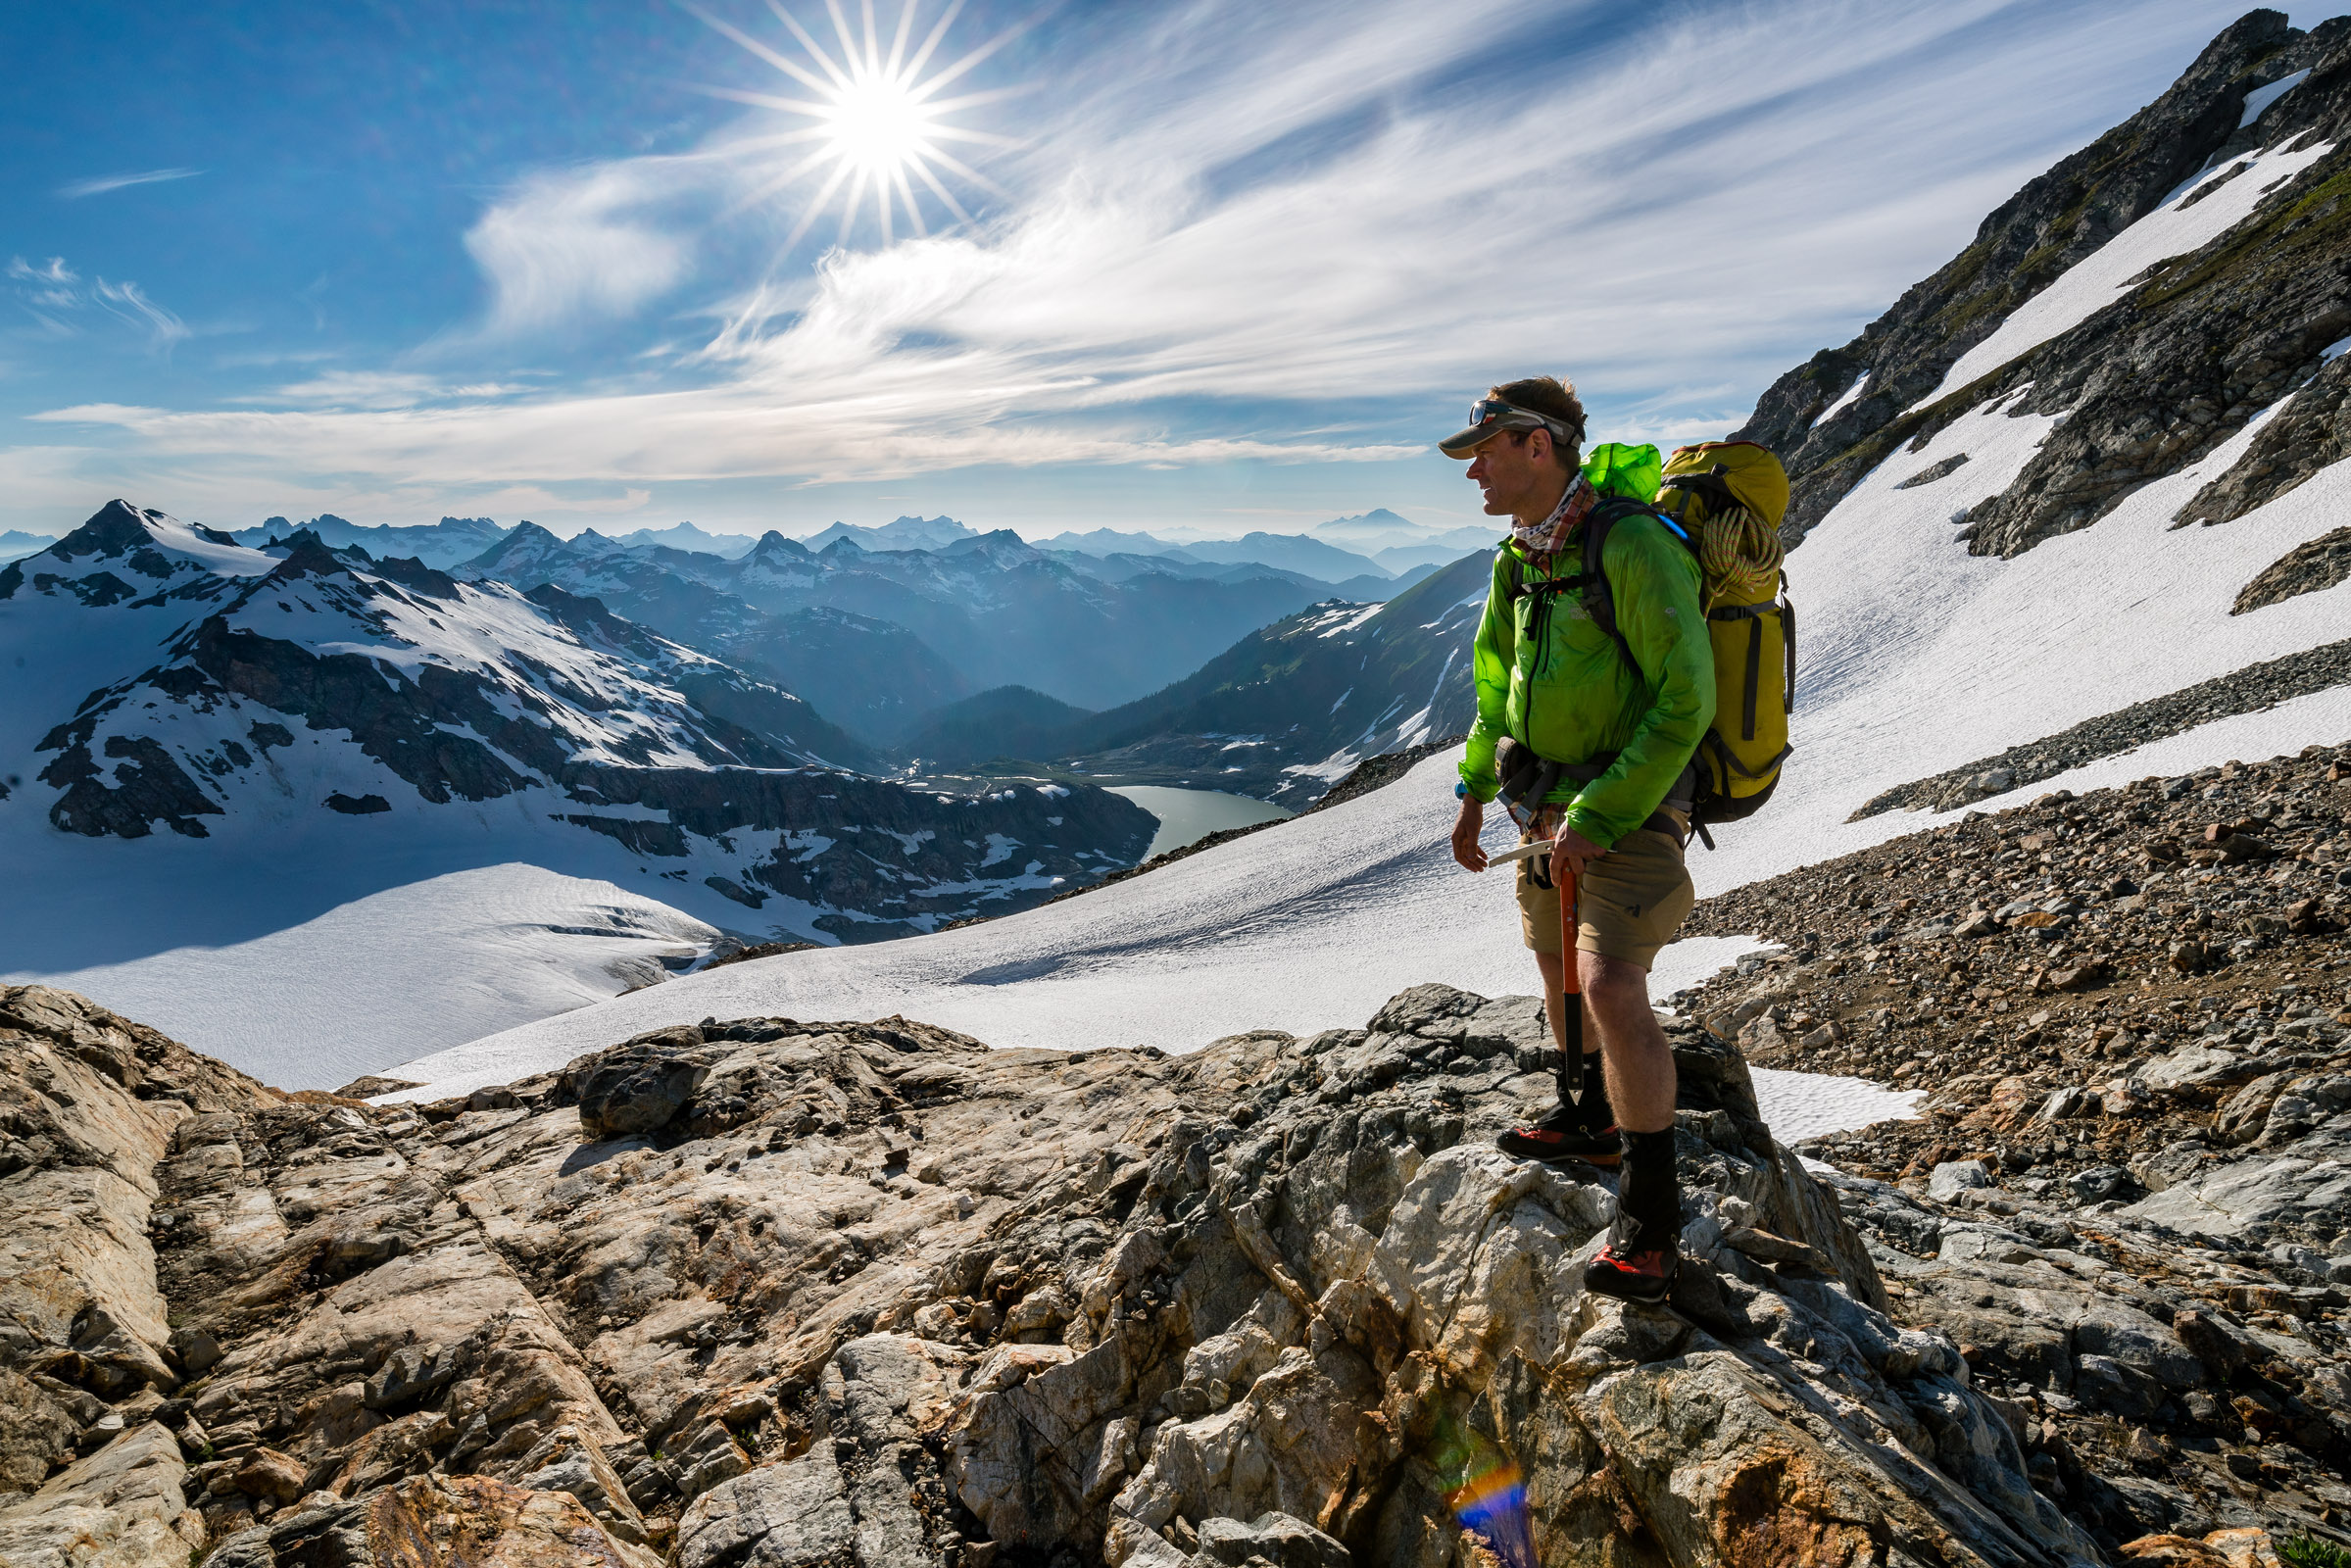 Adventures: Mountaineering and scenery of the Ptarmigan Traverse, a 35 mile alpine traverse in the North Cascades of Washington State